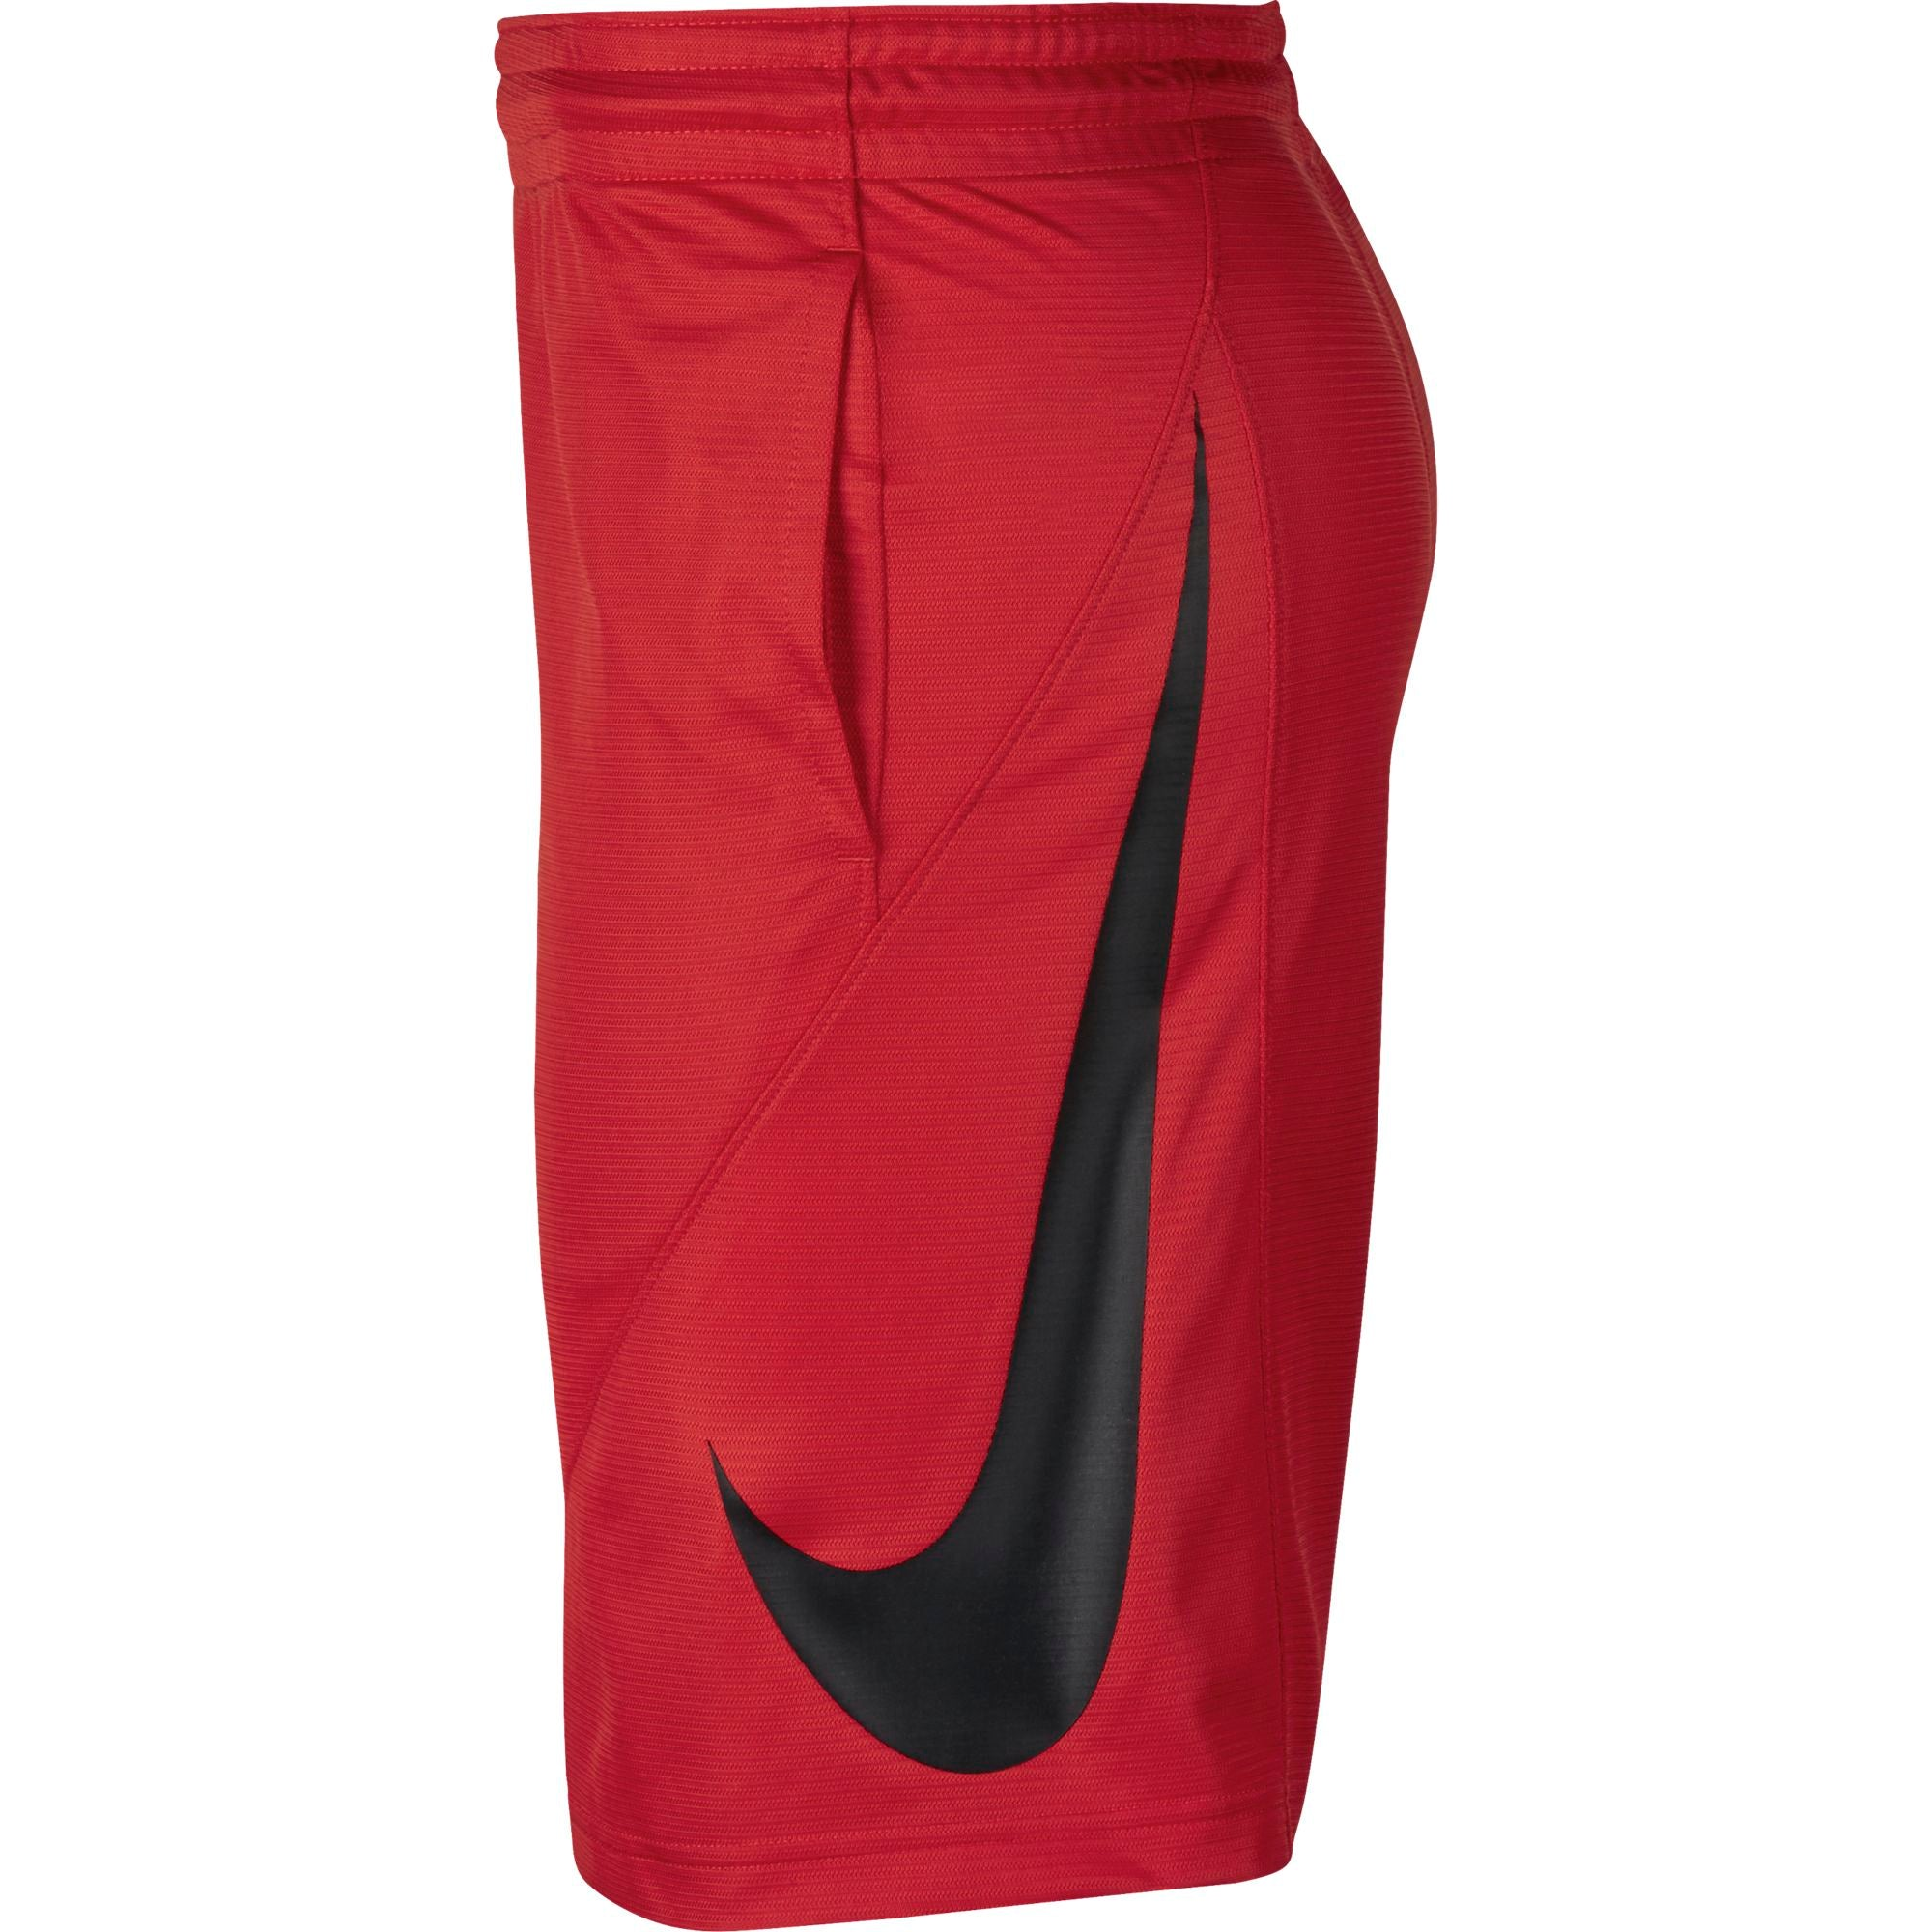 Nike Basketball Dry Fit Swoosh Shorts - University Red/Black